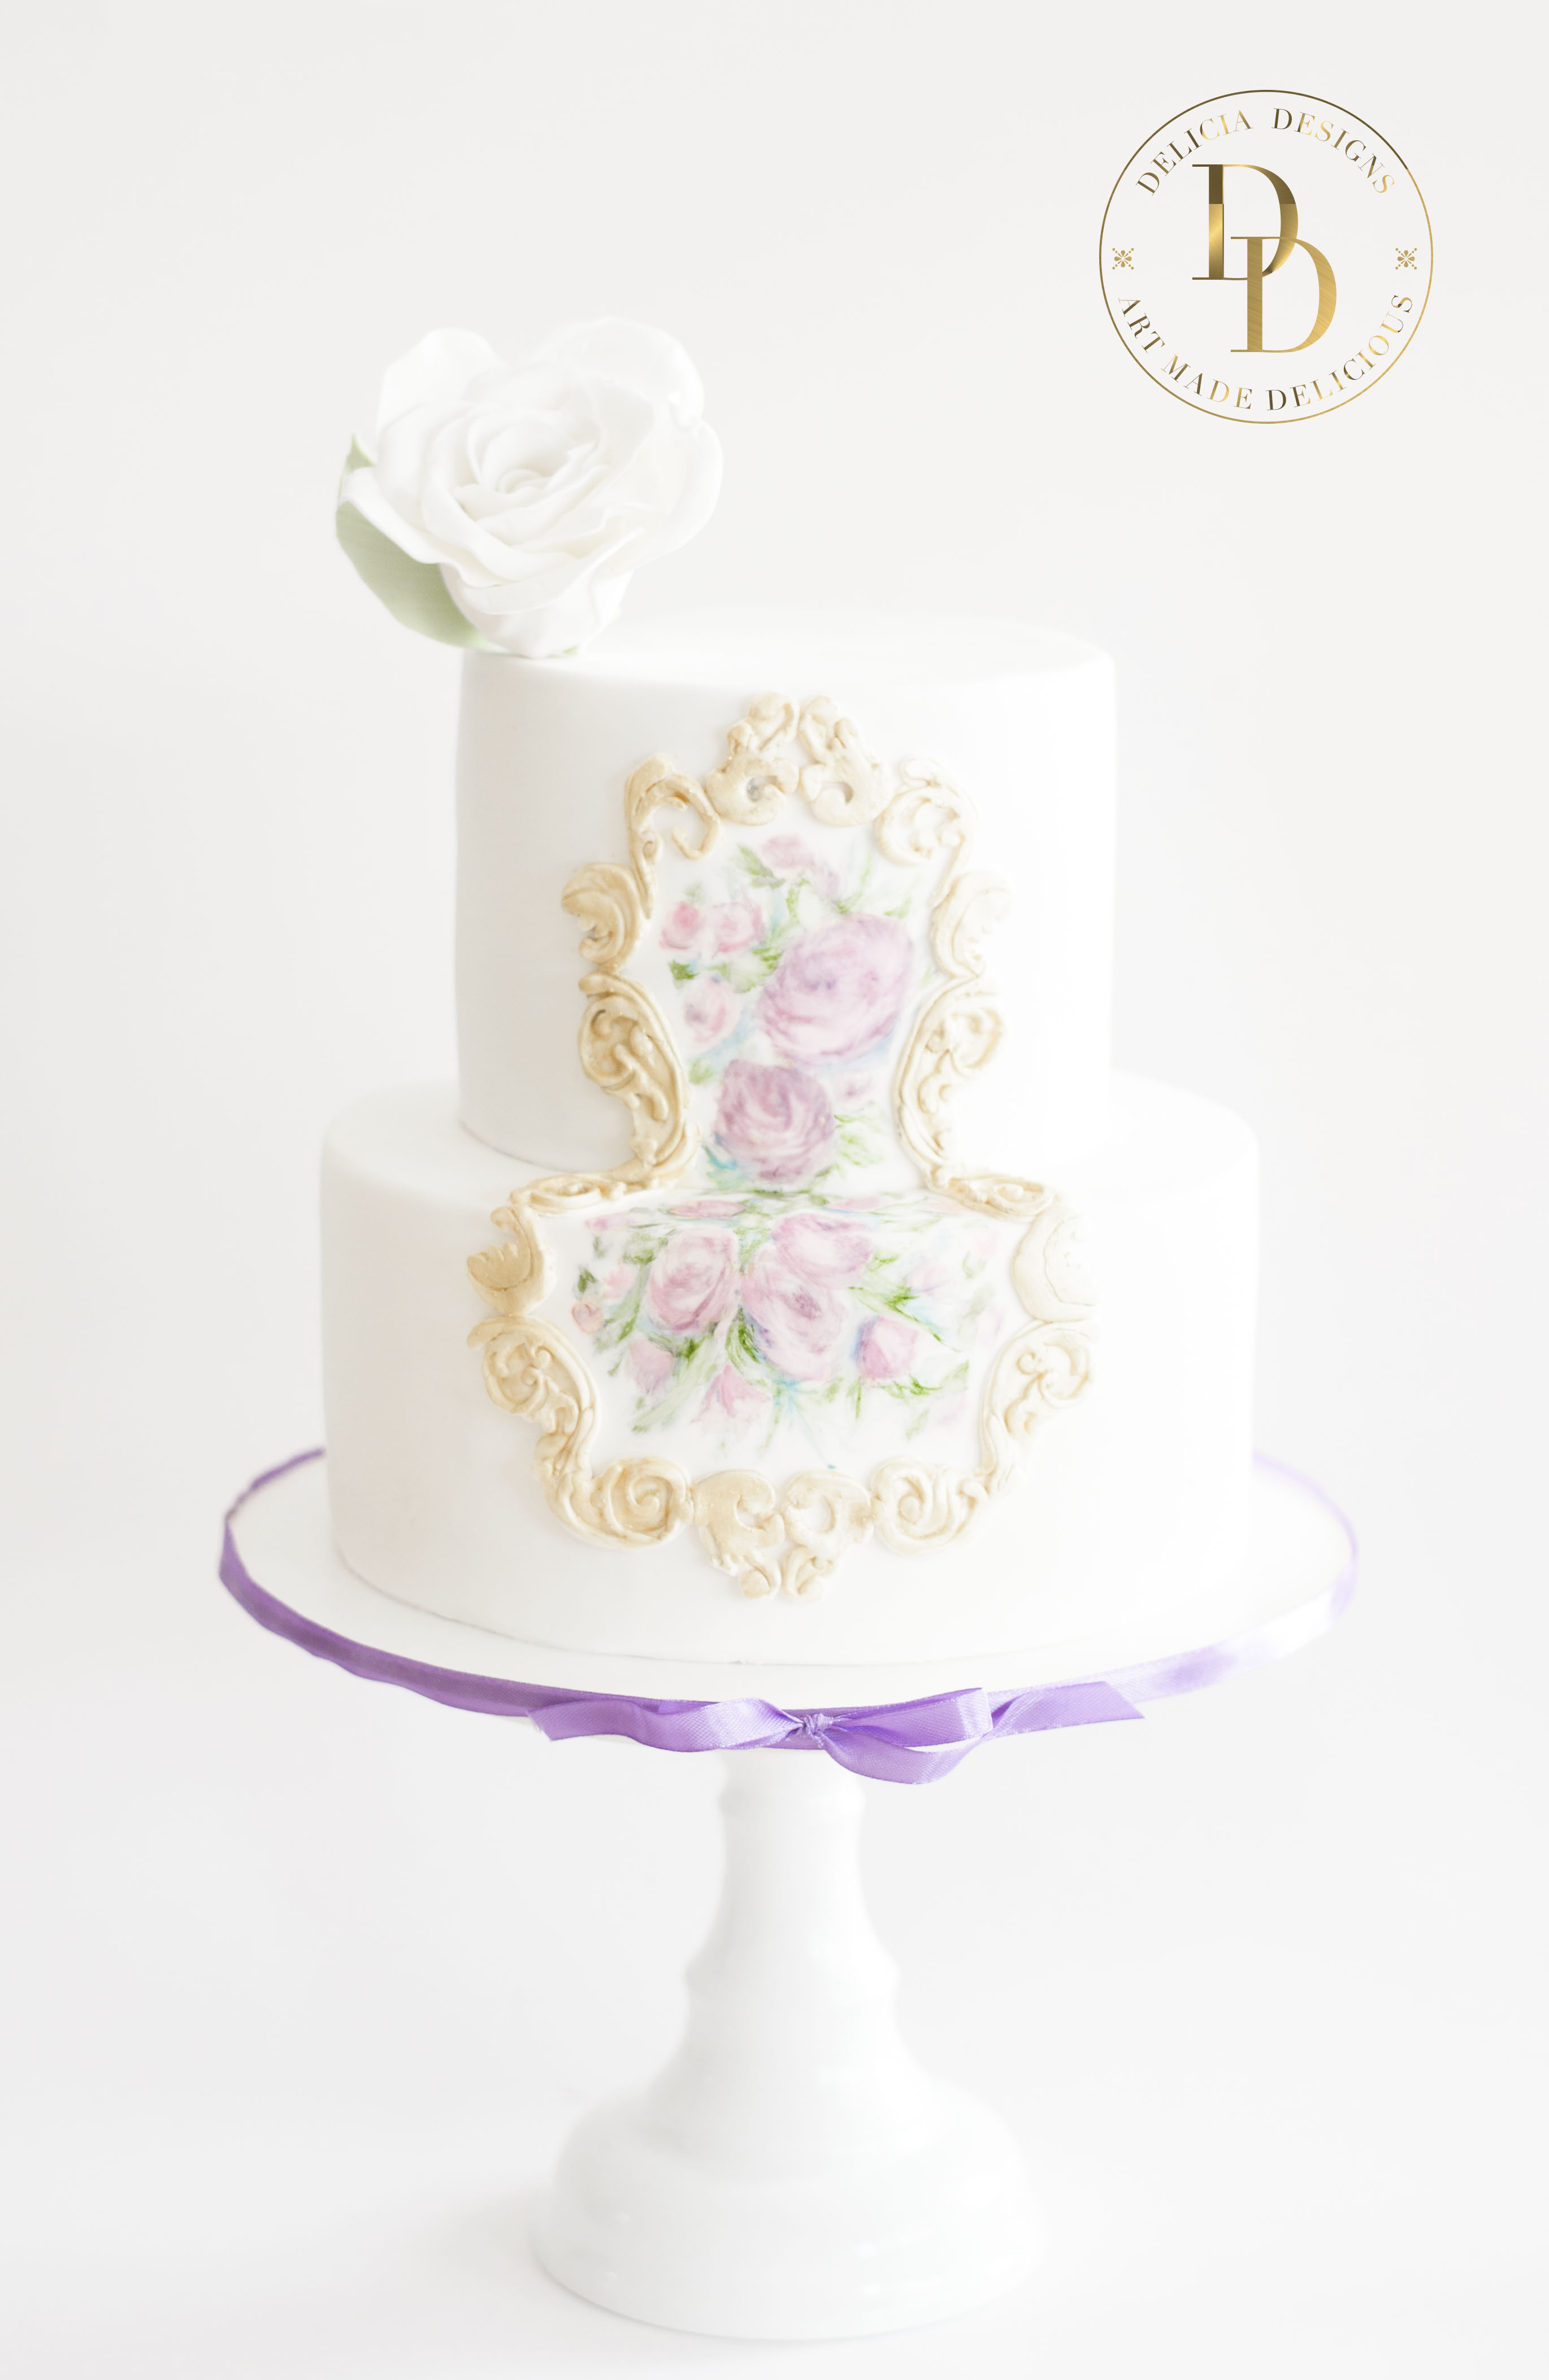 White Victorian Wedding cake with gold and hand painted flower